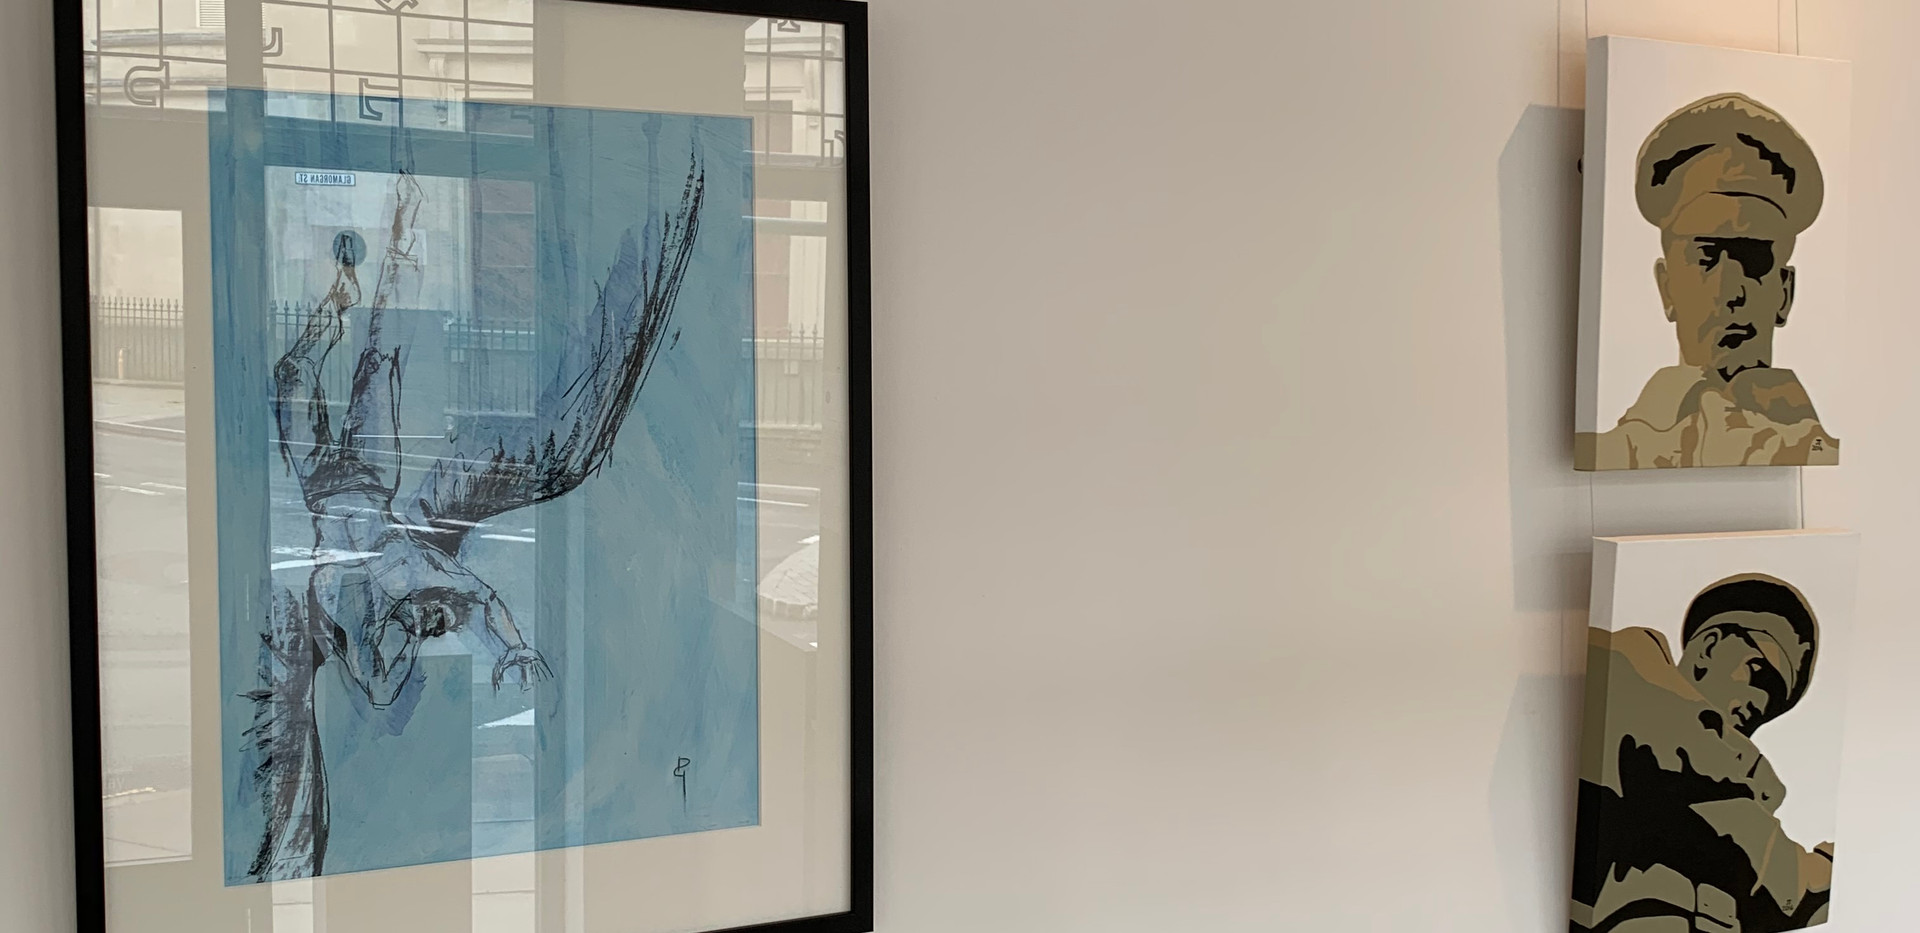 Icarus Angel I by Deborah Gillingham with acrylics on canvas by John Turnock - Lament & Why?